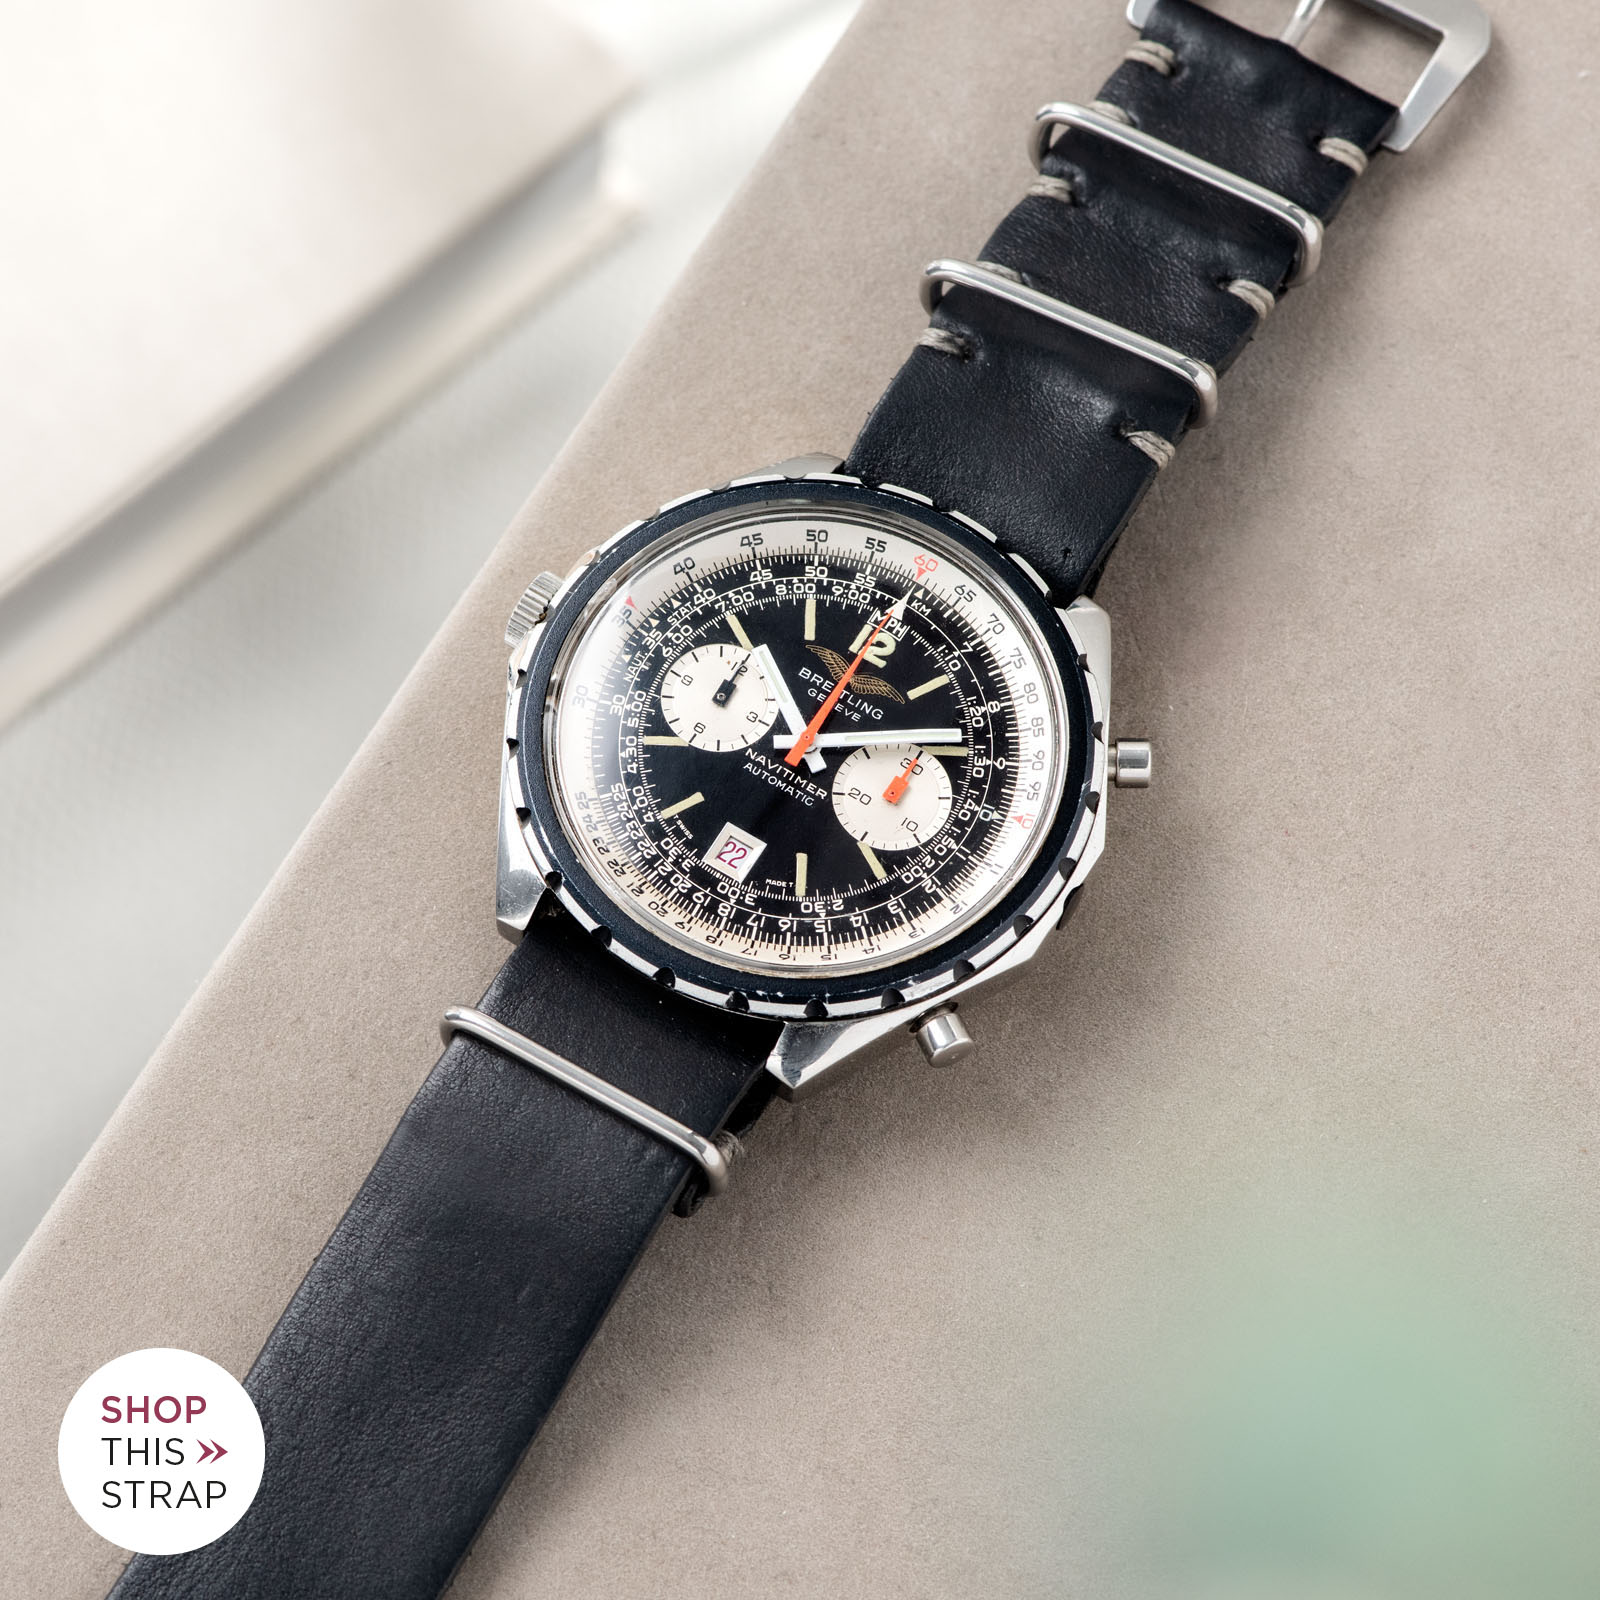 Bulang and Sons_Strapguide_Breitling Navitimer ref issued to iraqi air force ref 1806_Black Nato Leather Watch Strap_001